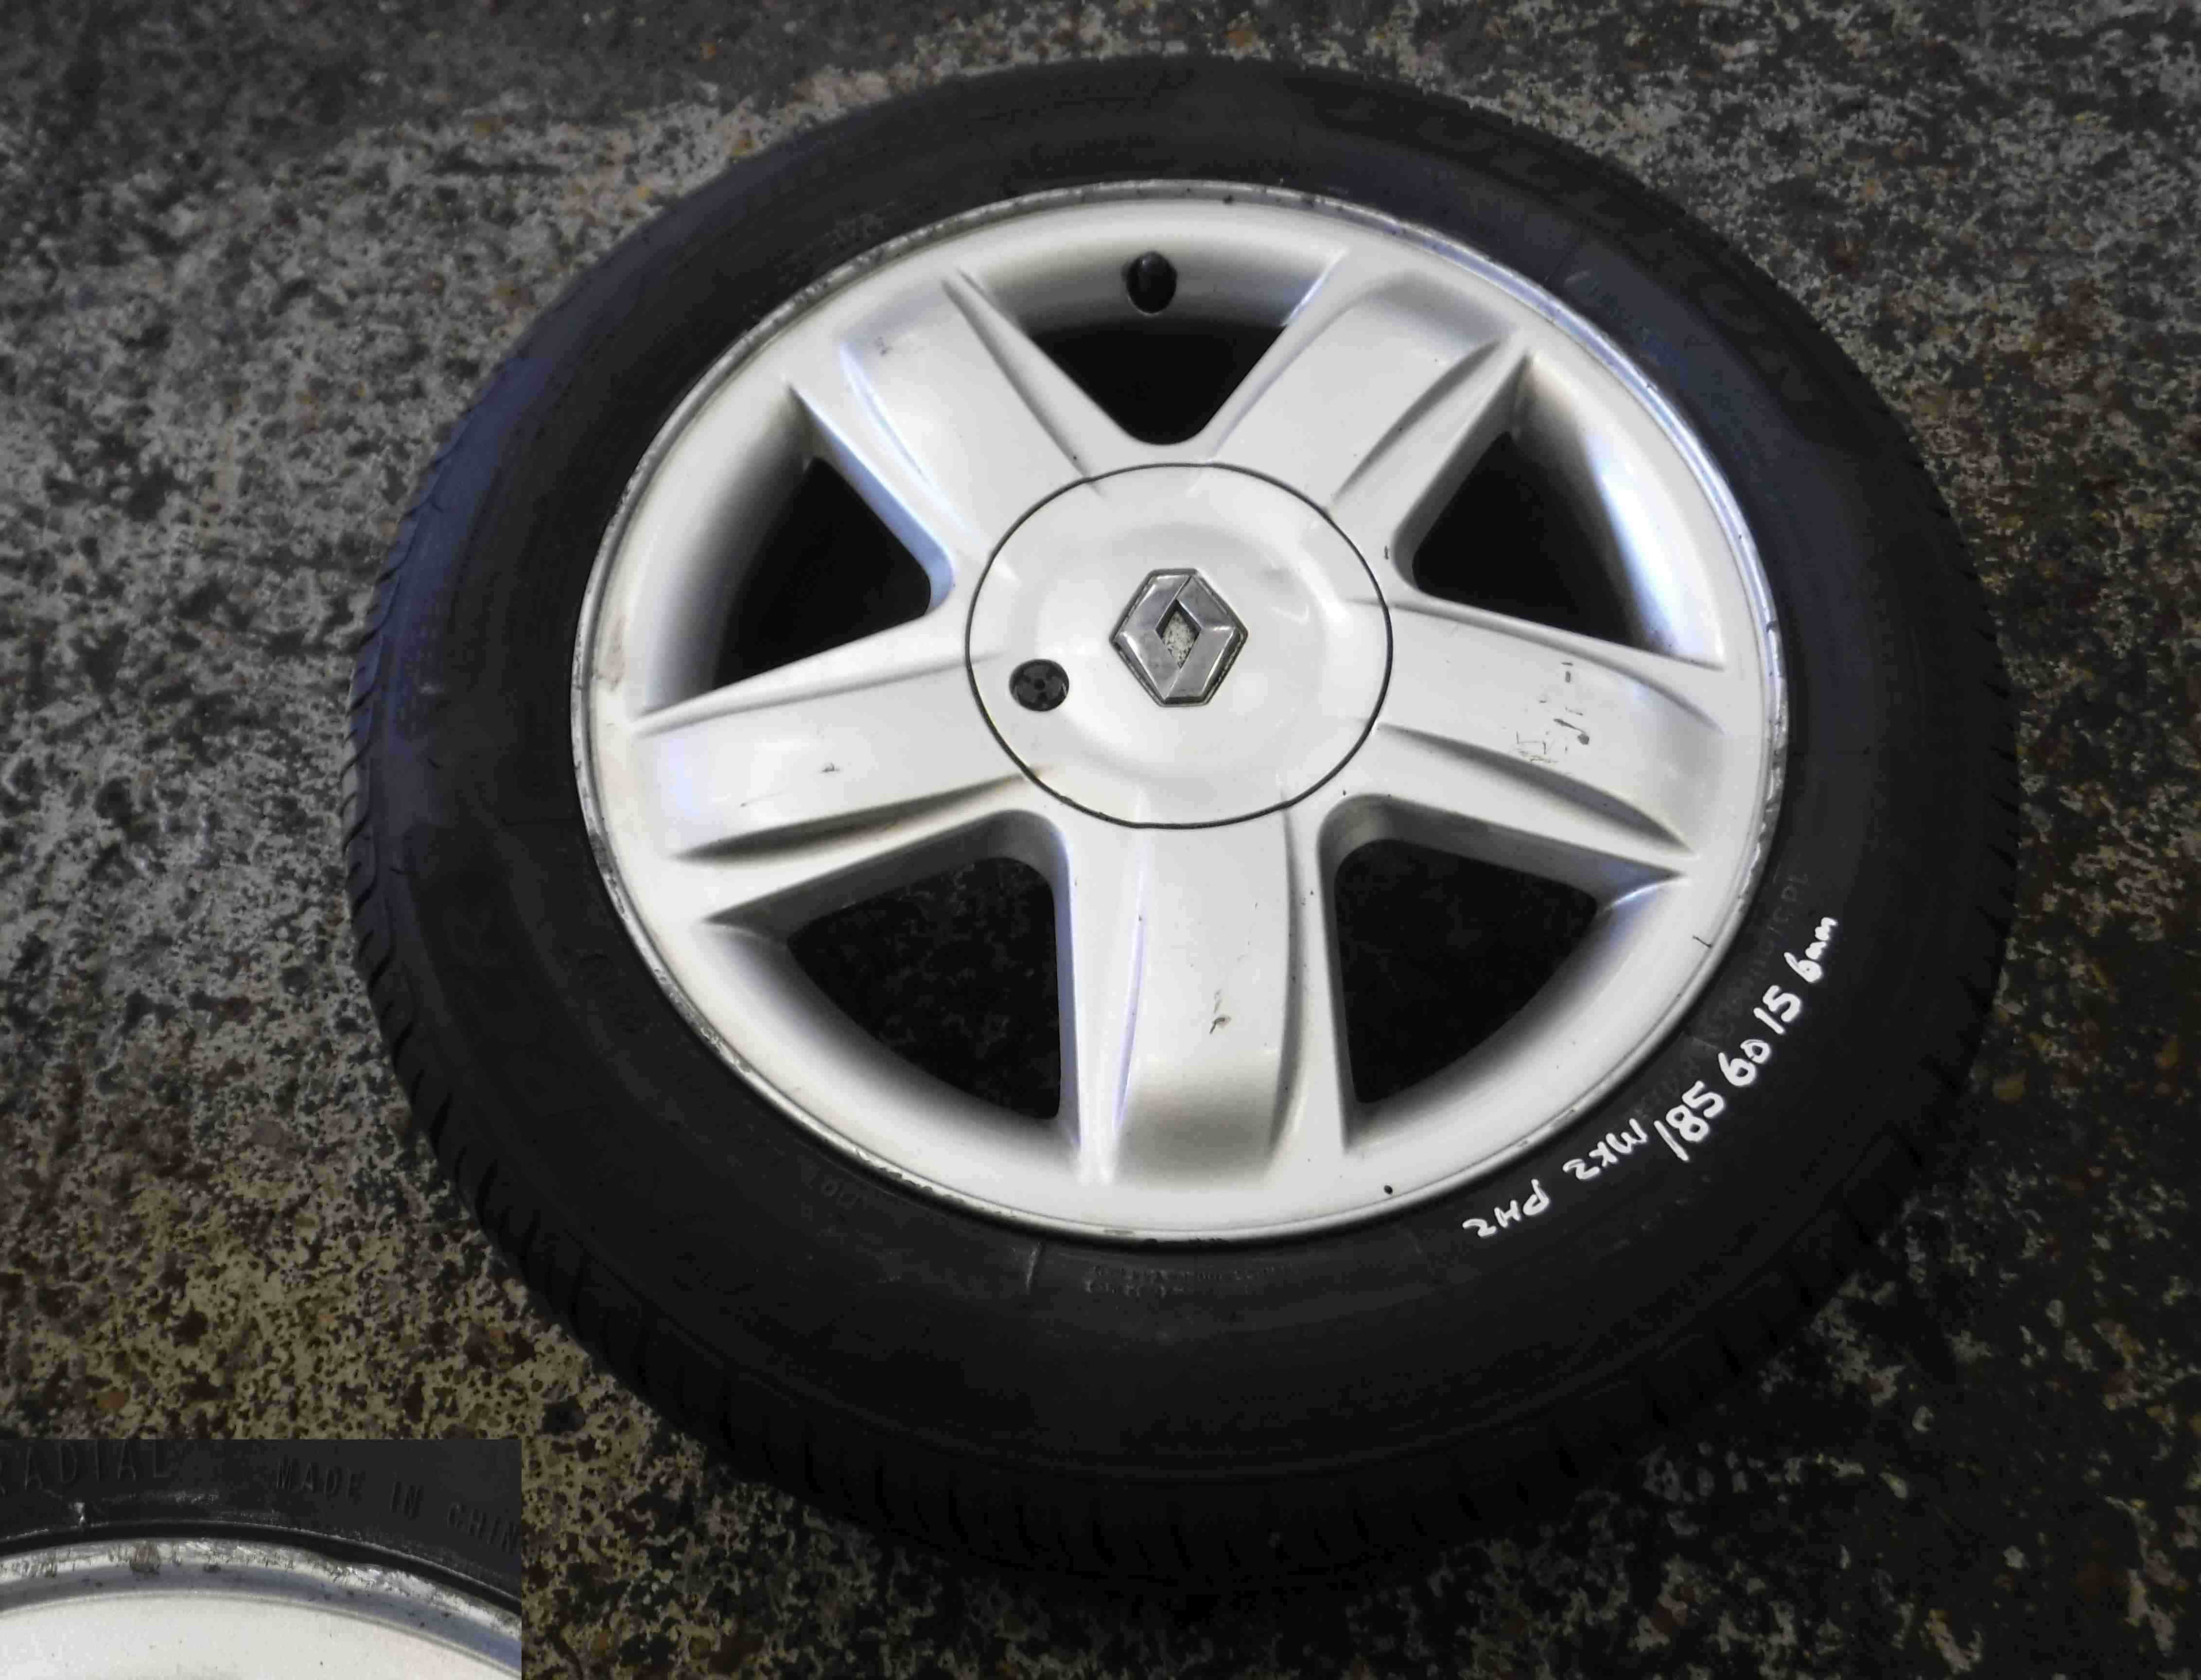 Renault Clio MK2 2001-2006 Dynamique Alloy Wheel With Tyre 185 55 15 6mm 4/5